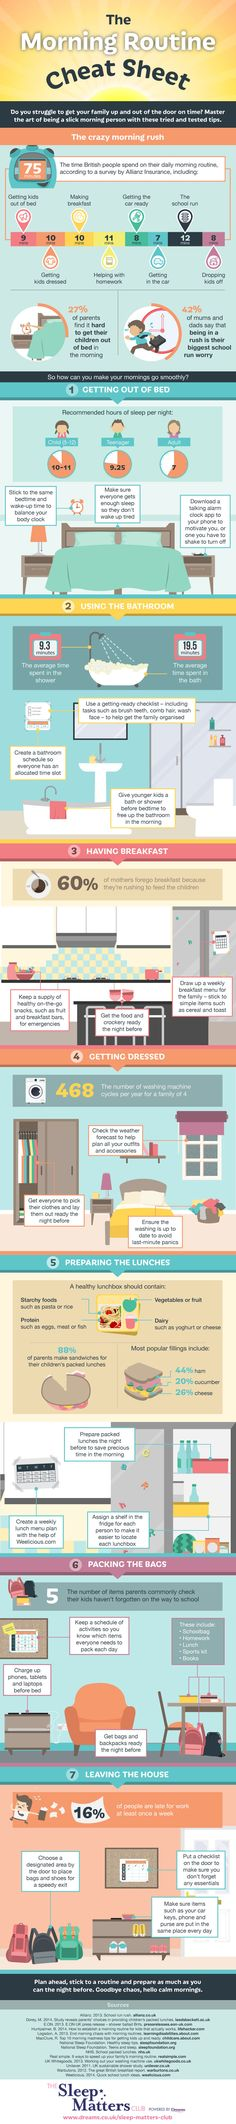 Mornings can be frantic, especially for those with big families. If you want to make your complicated morning journey easier on you and everyone you live with, then this morning routine cheat sheet is just what you need. The infographic will help you to nail everything from getting out of bed, to using the bathroom, having breakfast, getting dressed, preparing lunch, packing your bags and leaving the house!